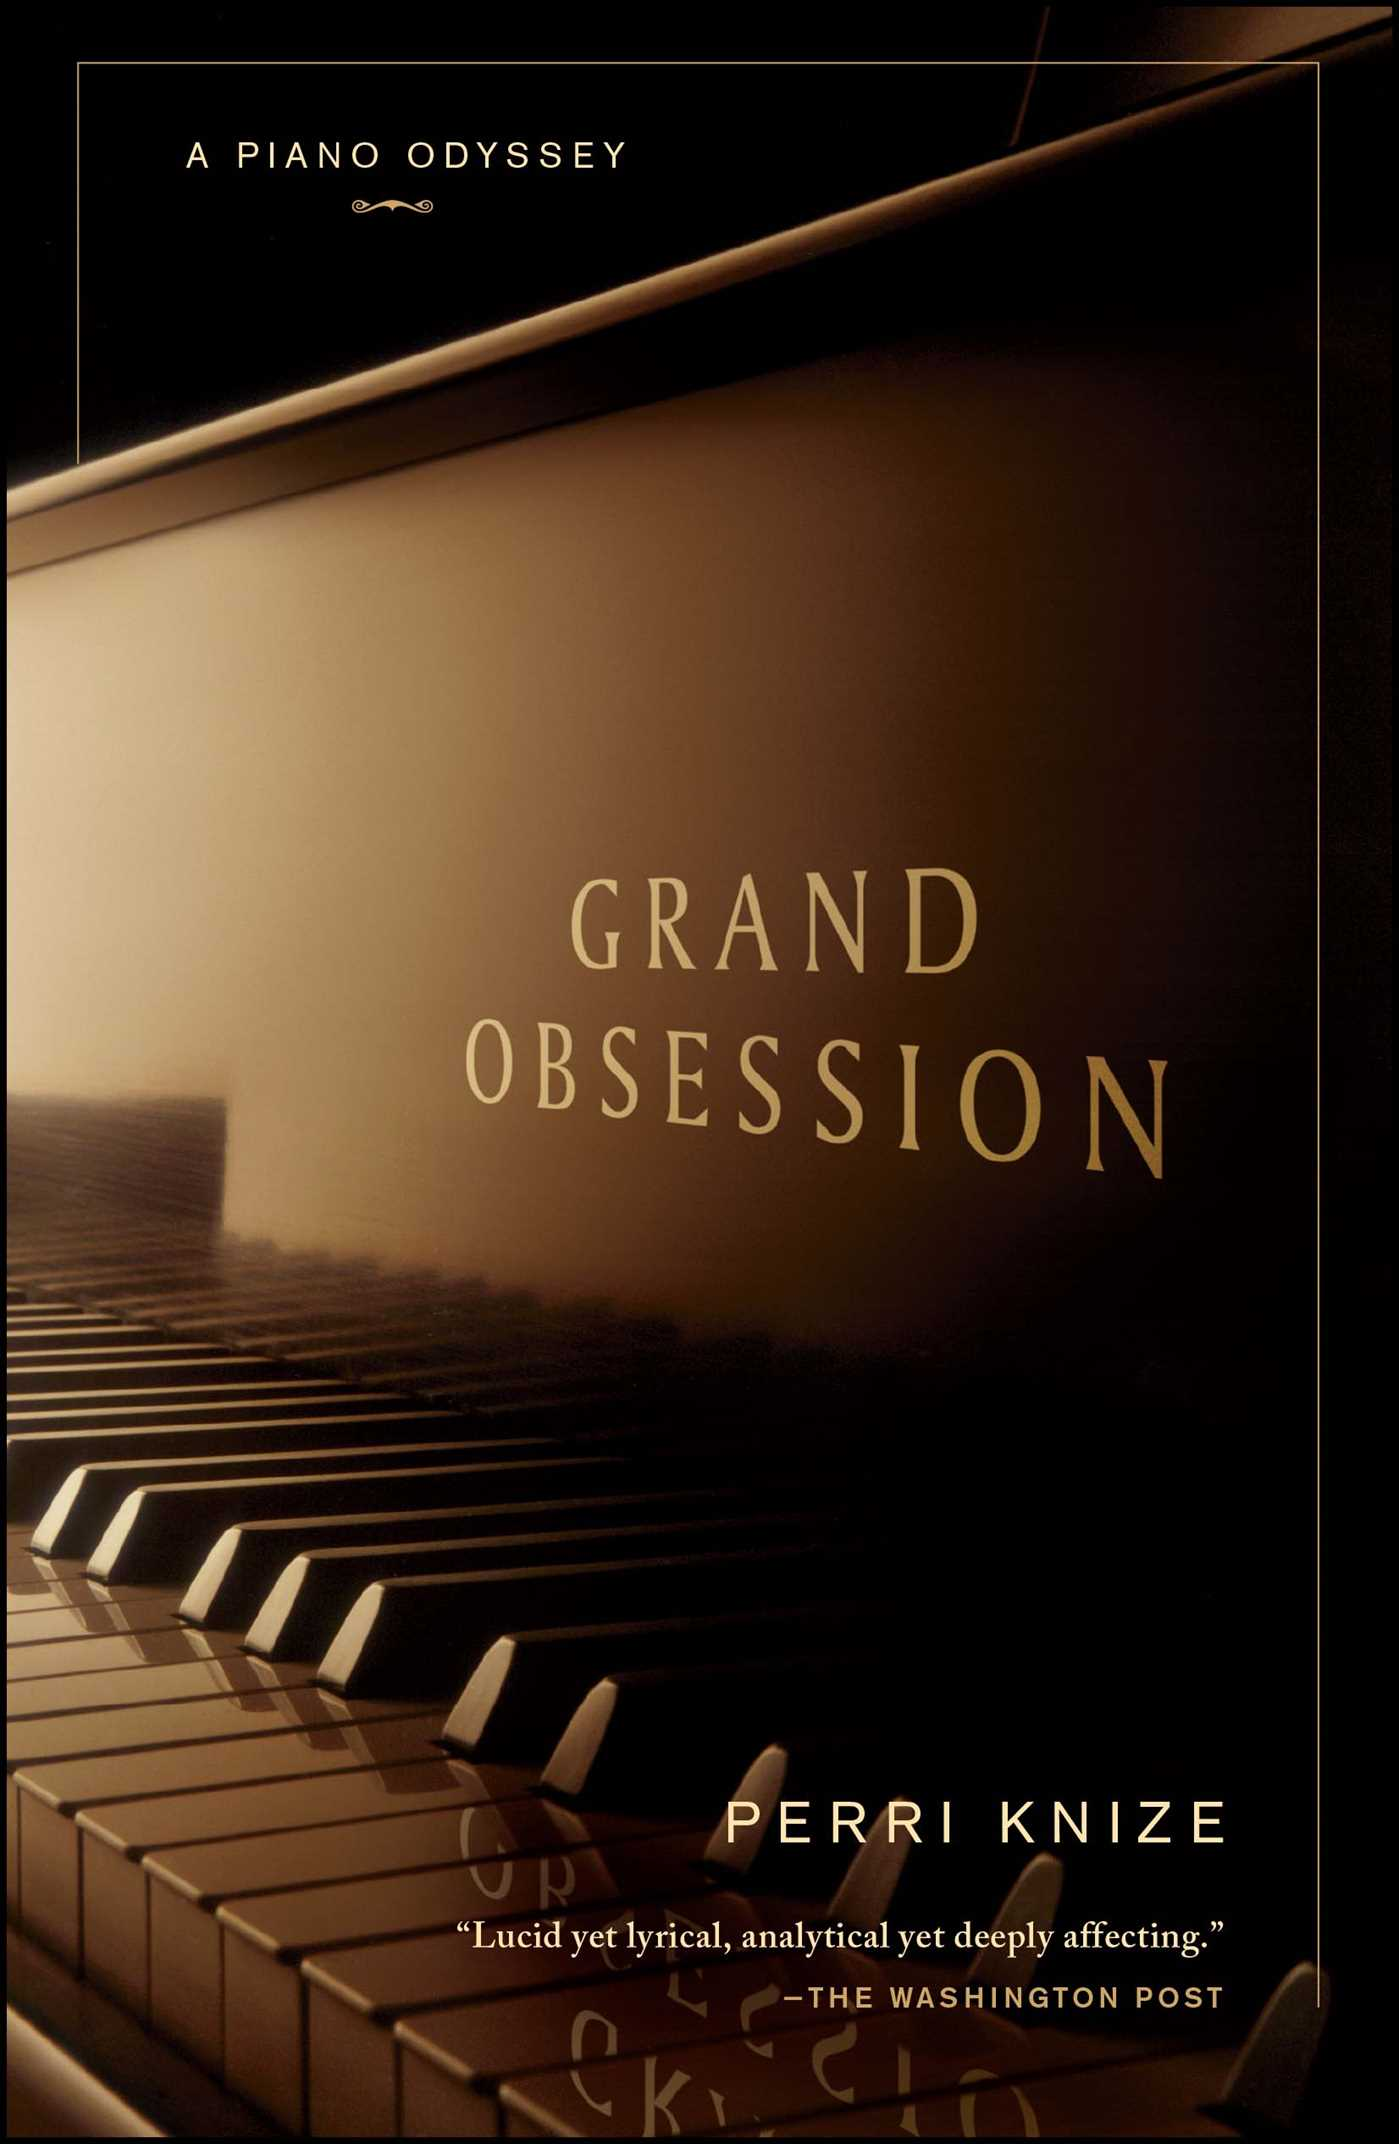 Grand-obsession-9780743276399_hr